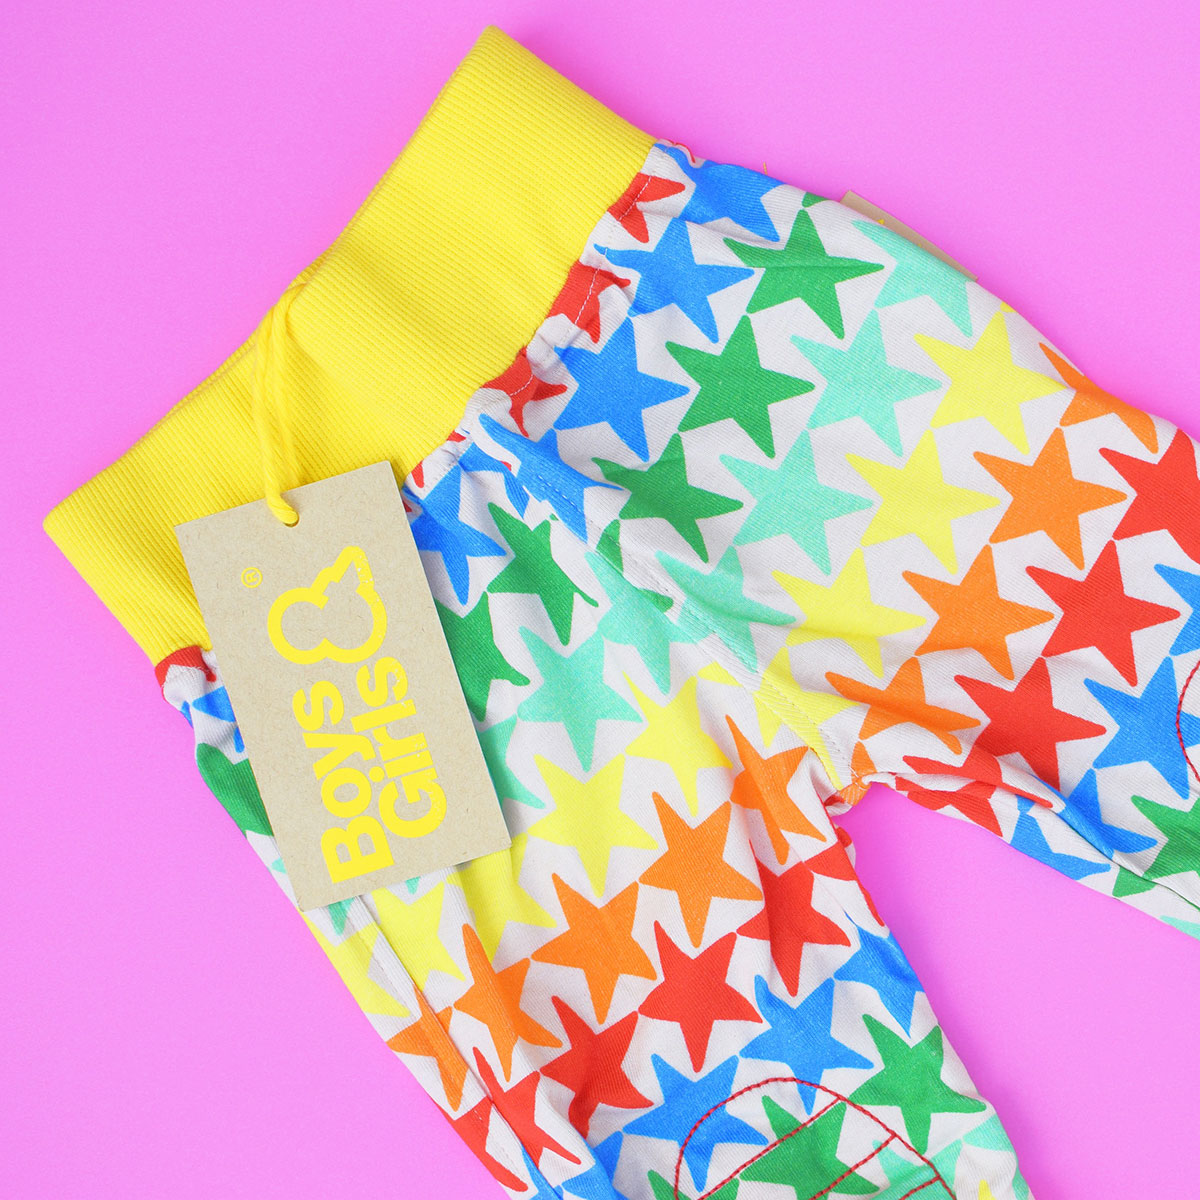 A Series of Awesome Things 01 - Boys&Girls star bright rainbow leggings from Remy Roo